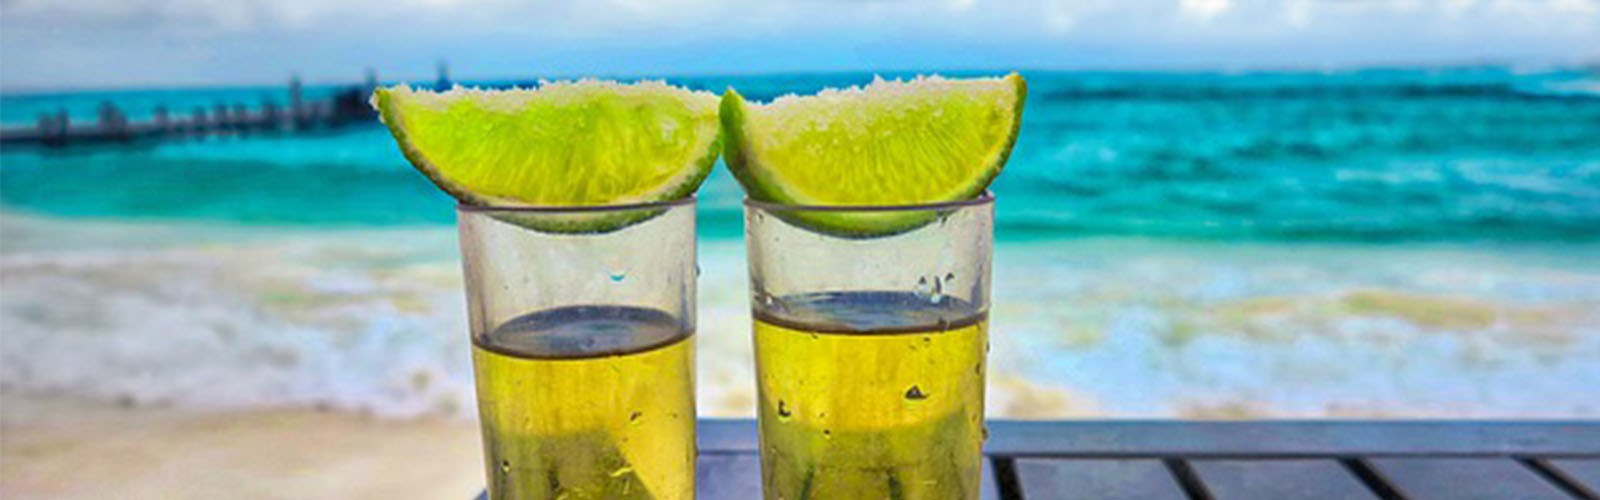 Tequila brands available to buy in Sri Lanka